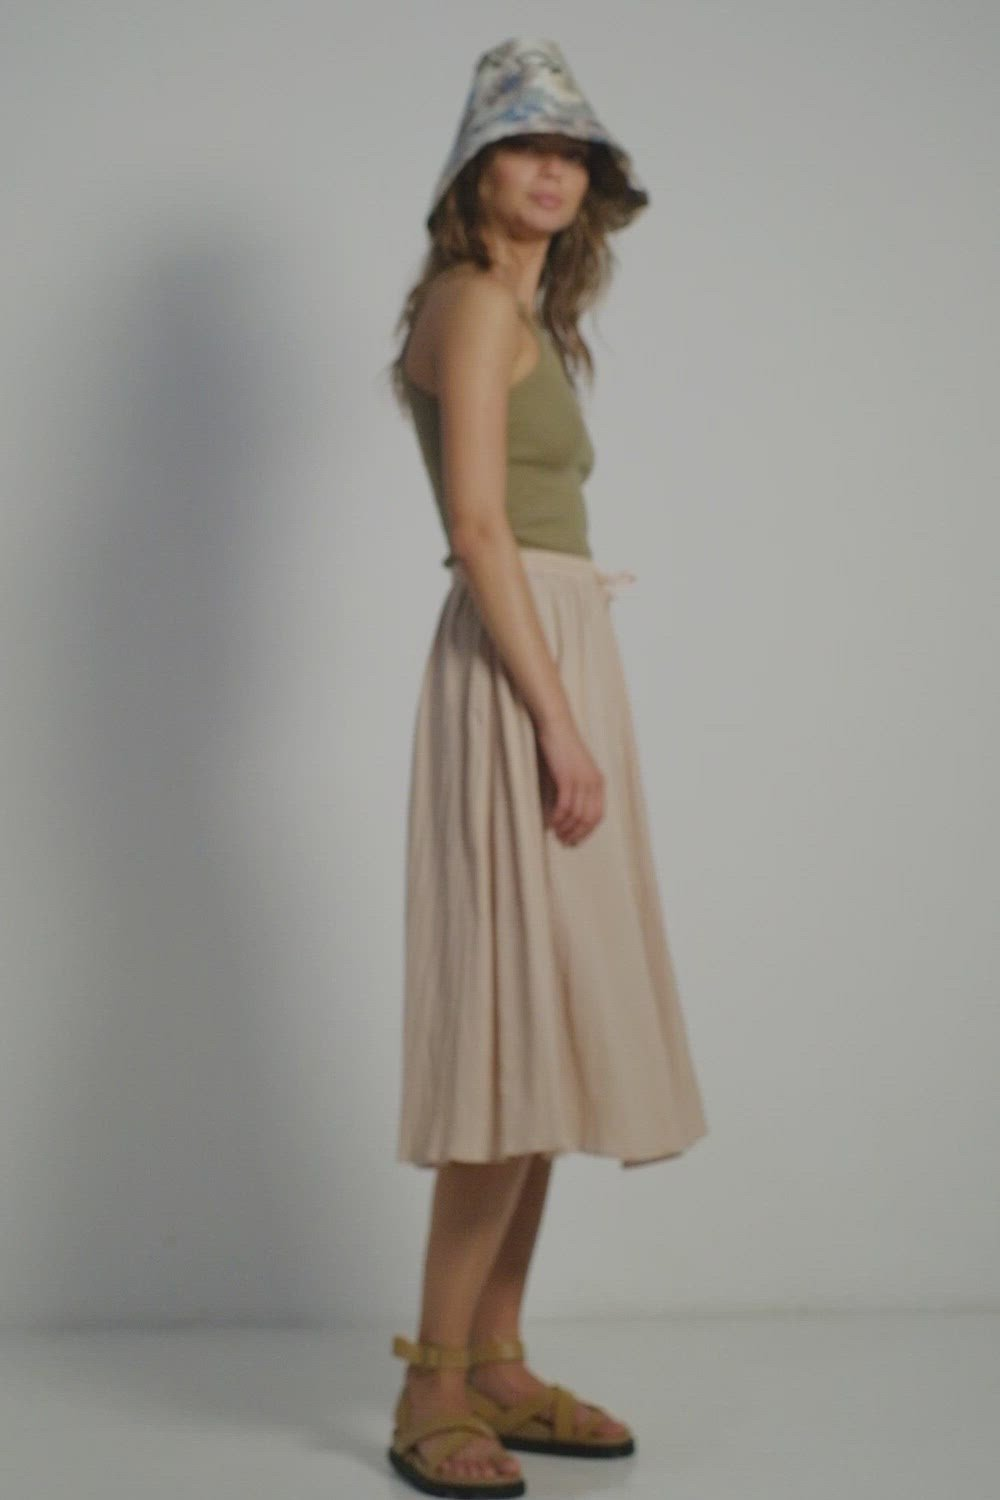 A woman in a bucket floral hat, khaki top and midi skirt by Lilya